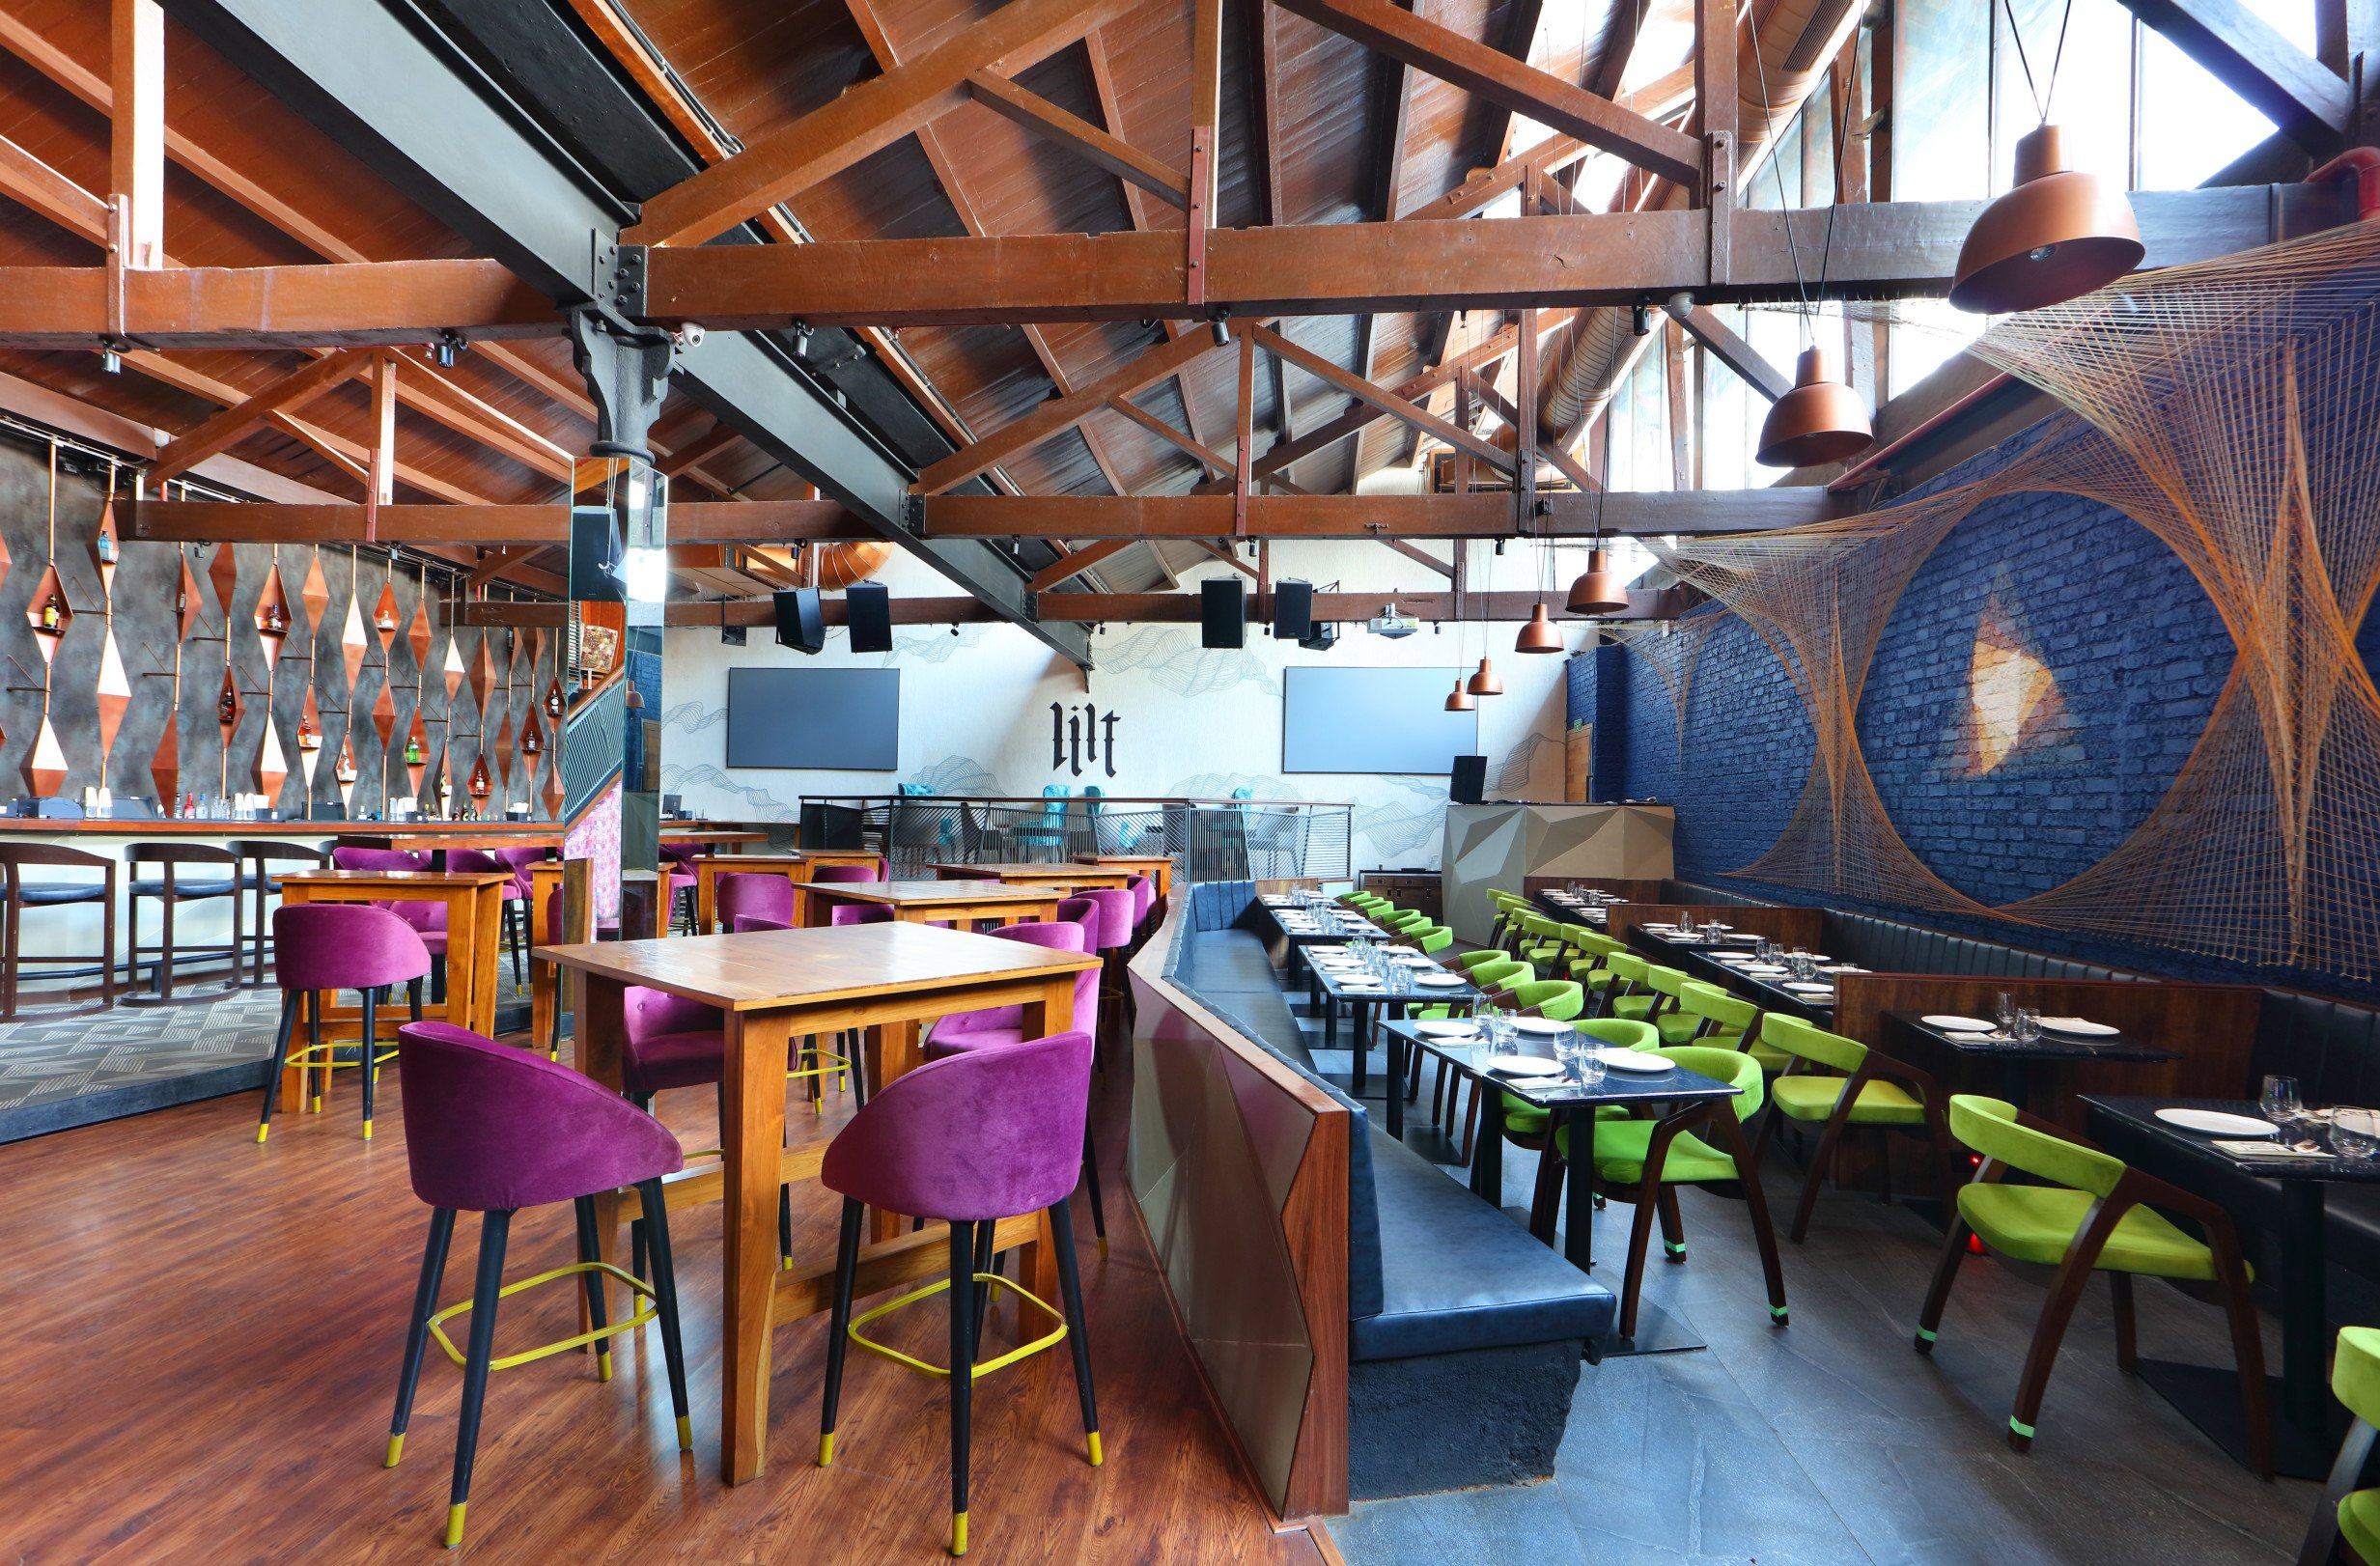 LILT: This Modern Multi Cuisine Resto-Bar Is A Must-Visit For Its Inclusivity